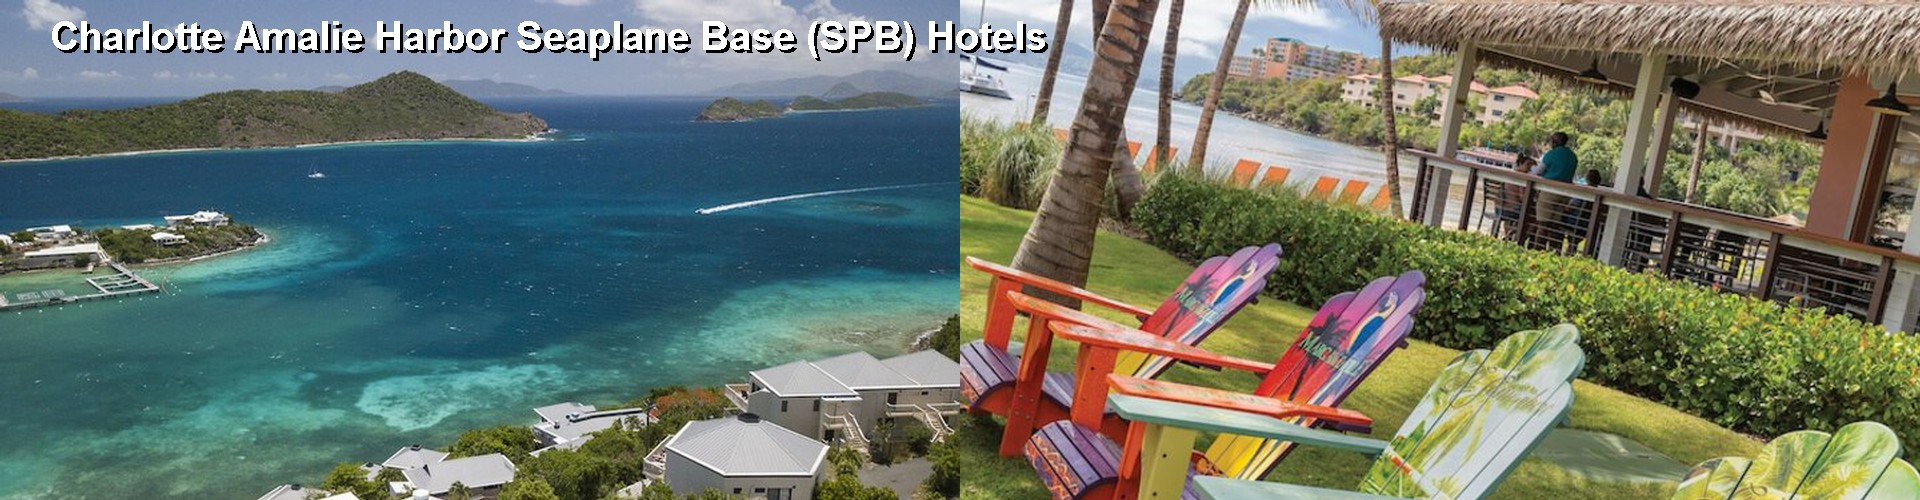 5 Best Hotels near Charlotte Amalie Harbor Seaplane Base (SPB)